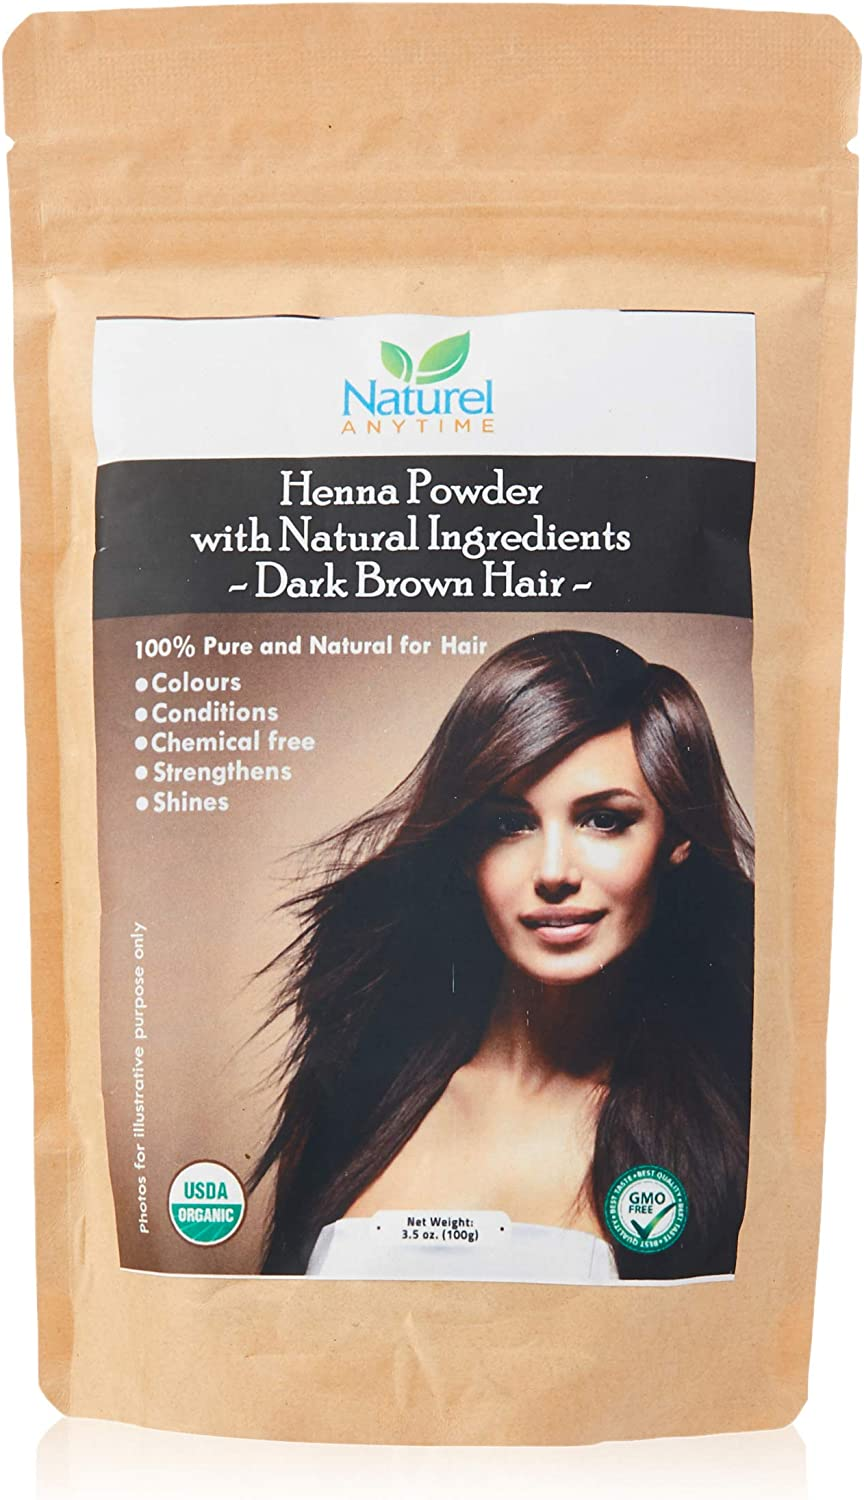 Organic (USDA, GMP) Henna for Dark Brown/Black/Reddish brown Colour Hair, healthier, softer hair (Recipe provided) for temp tattoos and eyebrows, CPSReports certified in UK/EU